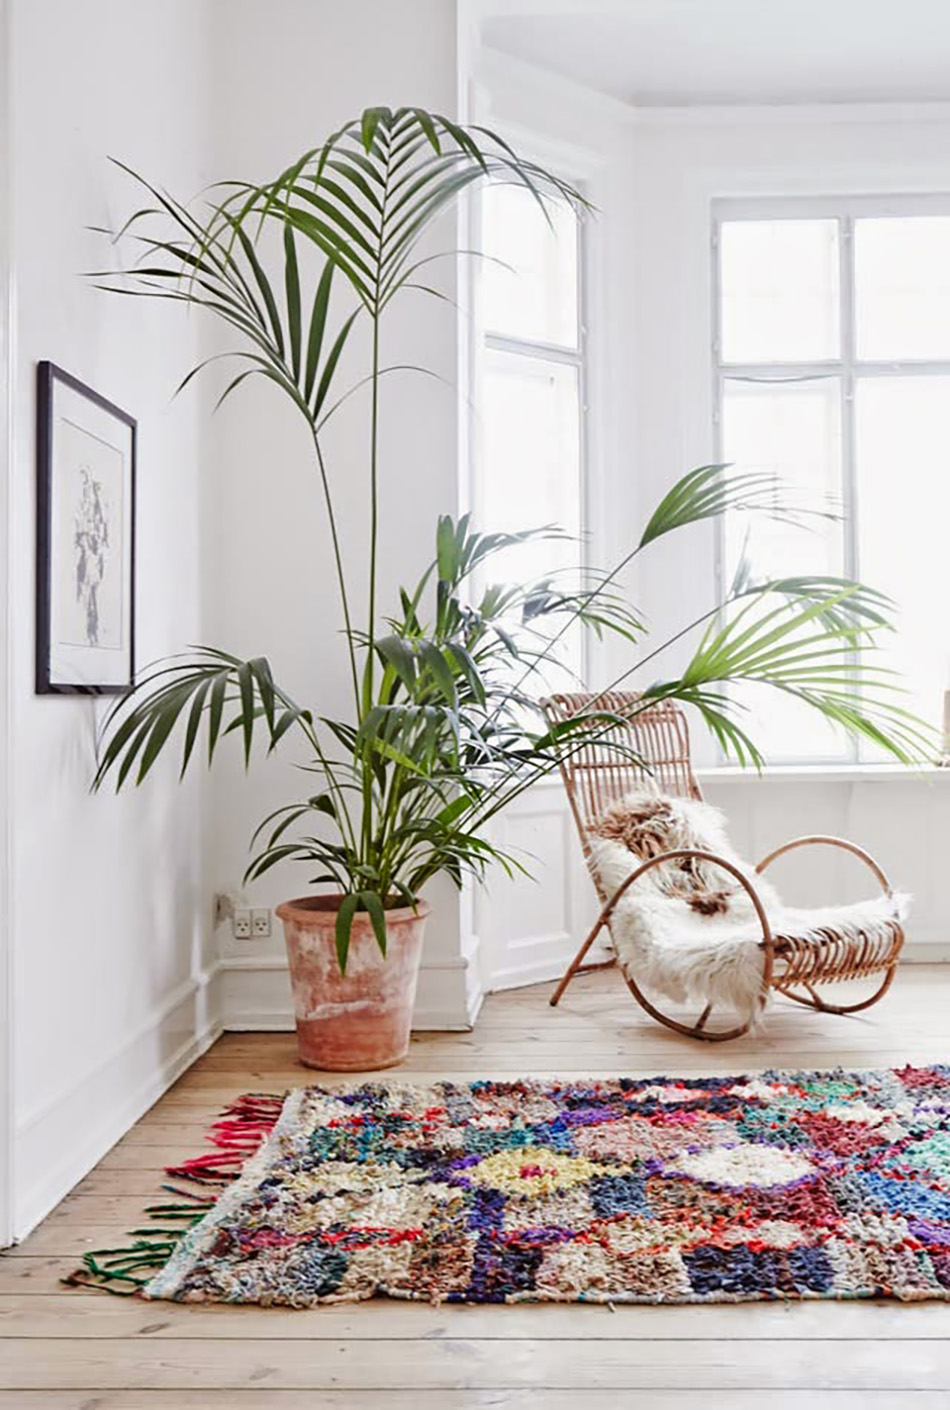 Indoor Living Room Decor With Plants